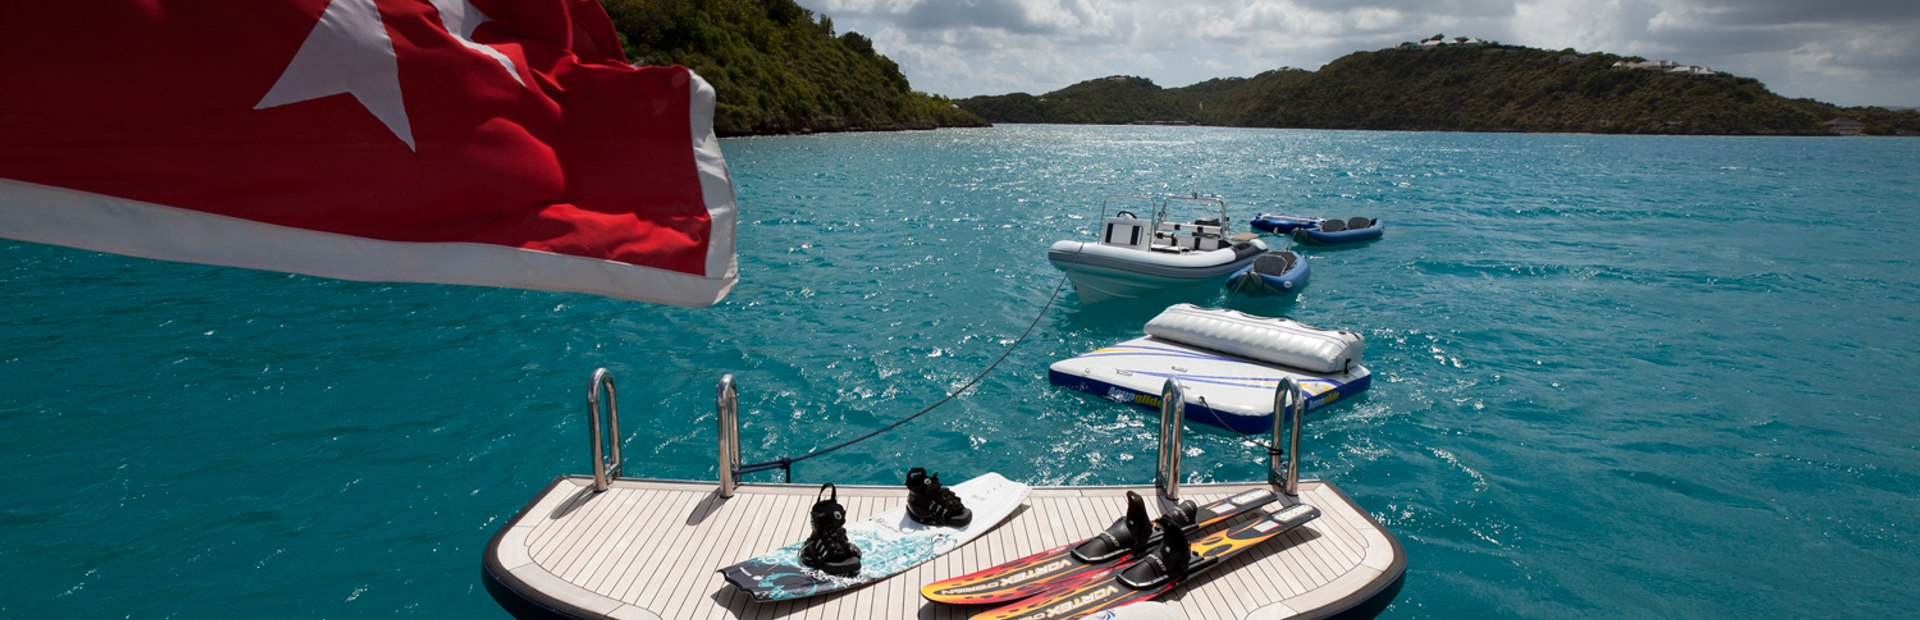 Alloy Yachts Genevieve offers great charter guest outdoor facilities